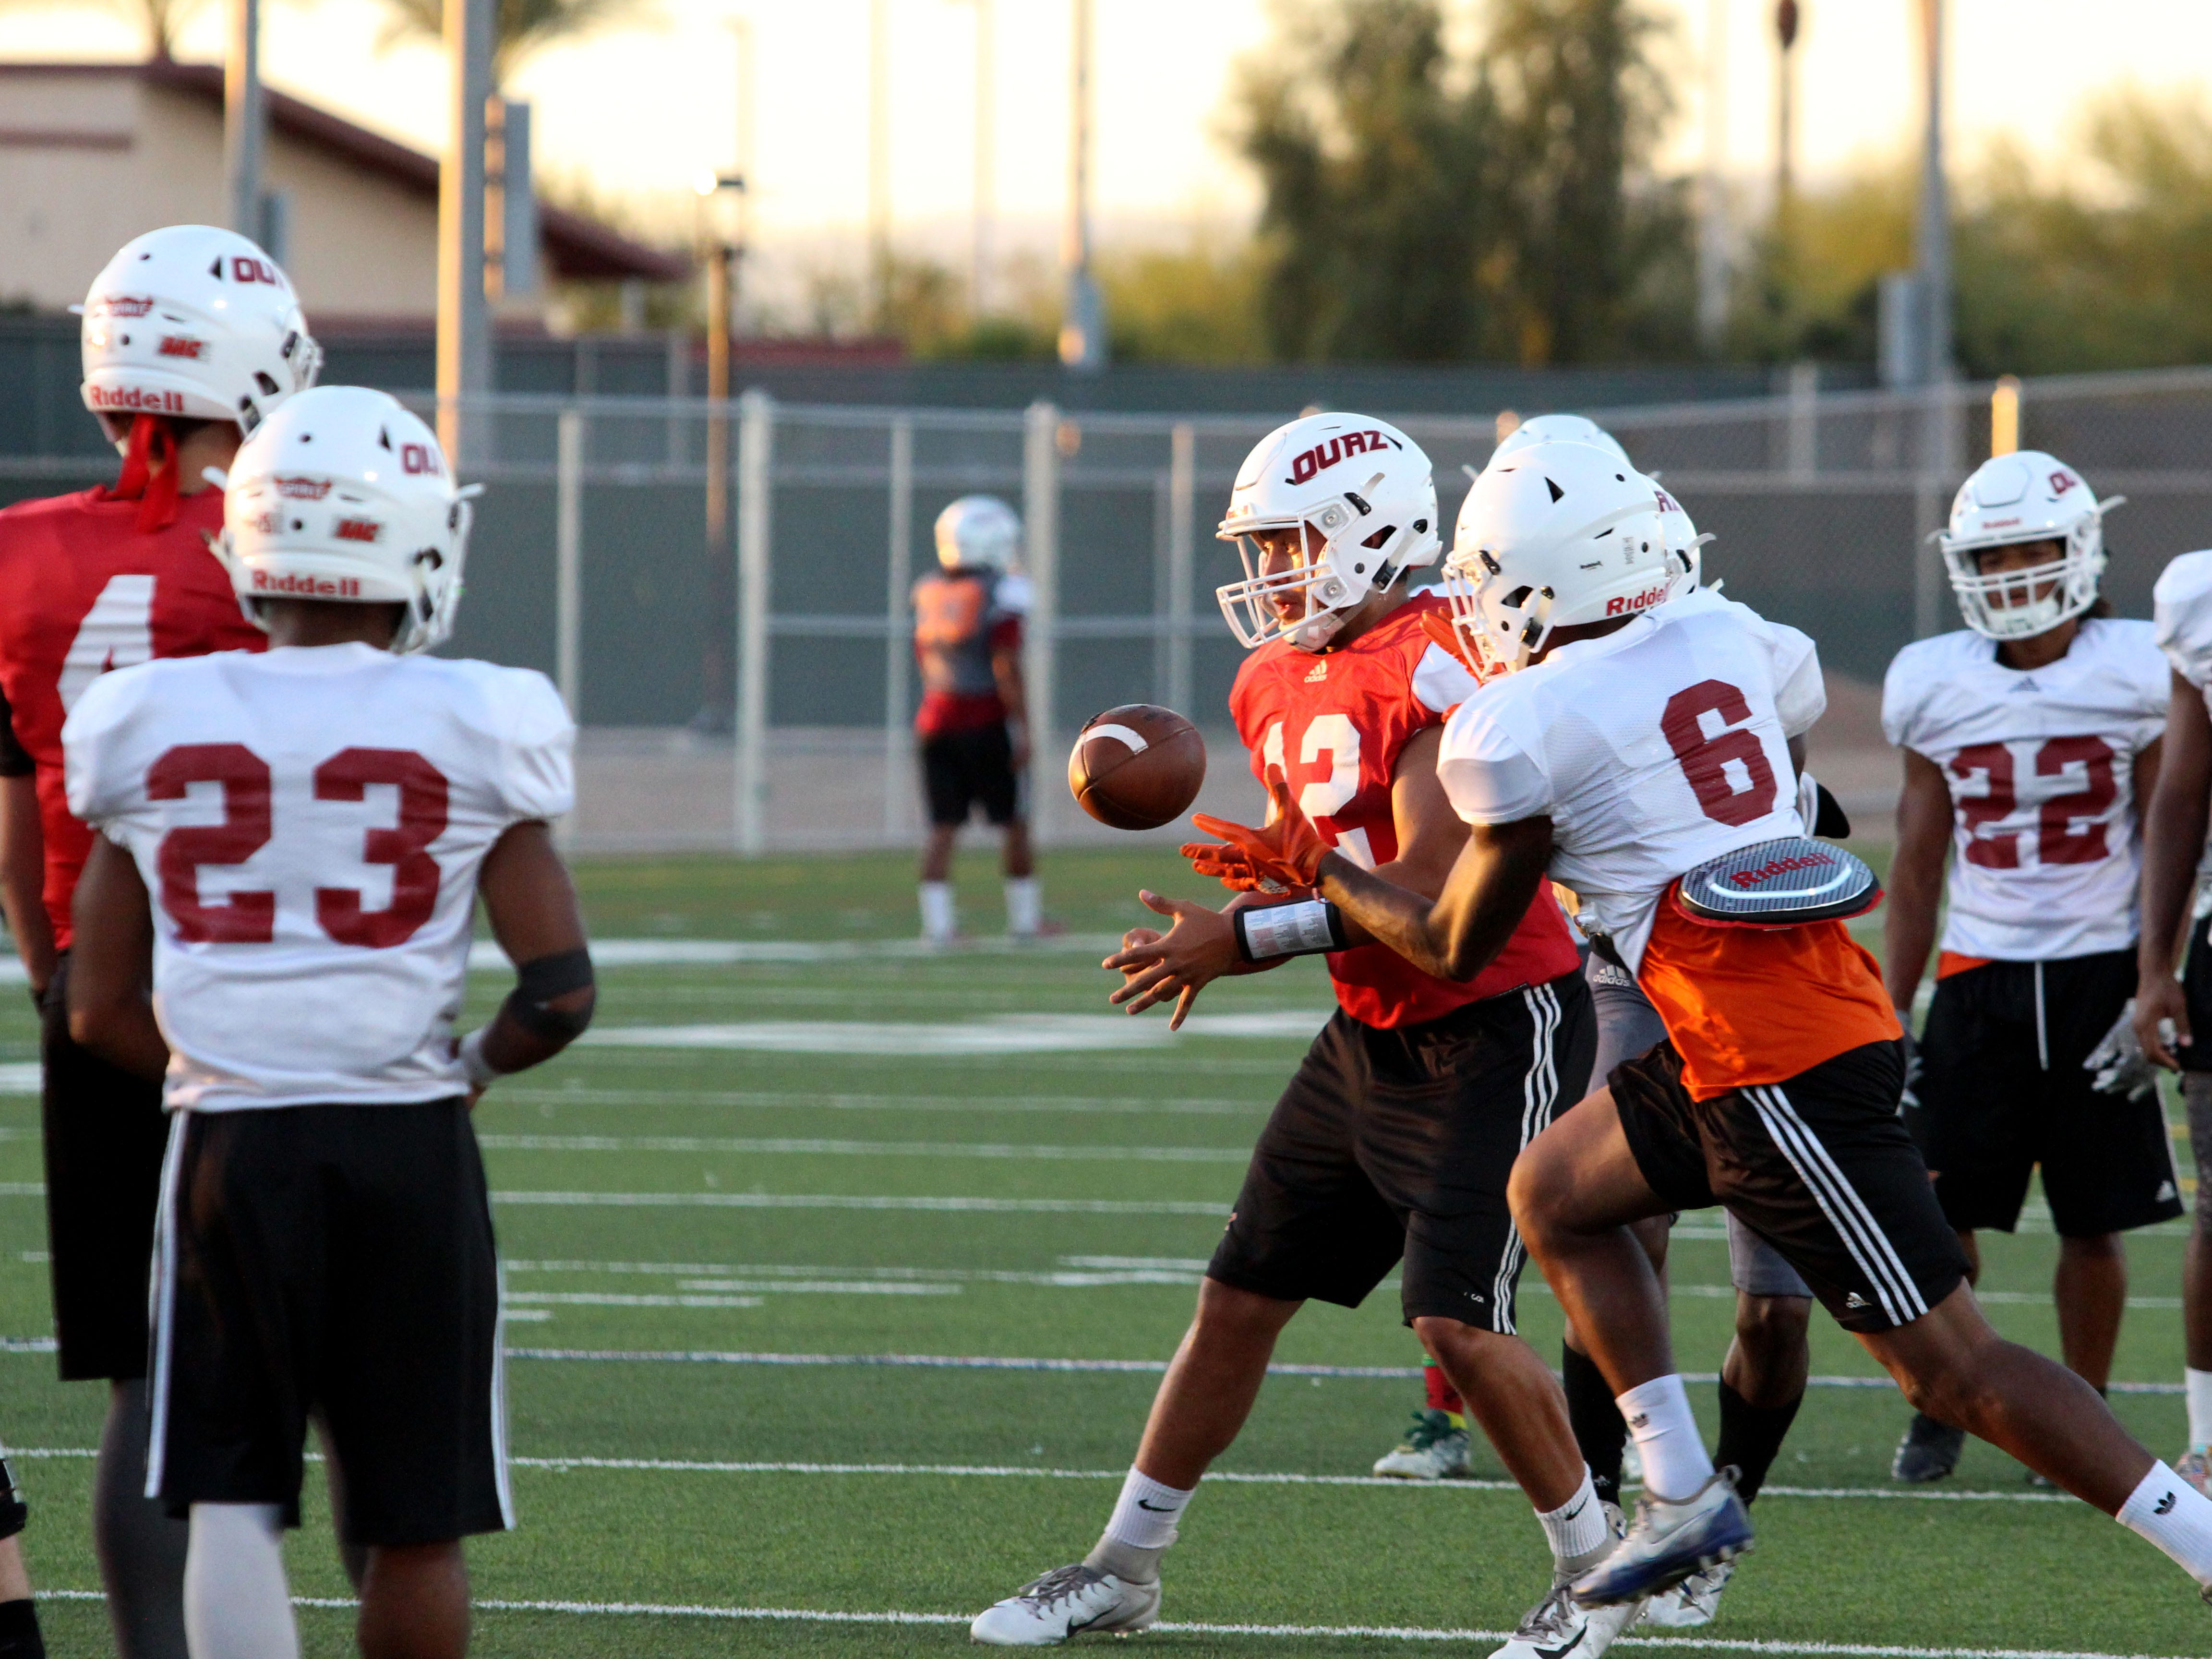 OUAZ players practice offense on Tuesday night in Surprise on Sept. 11, 2018.